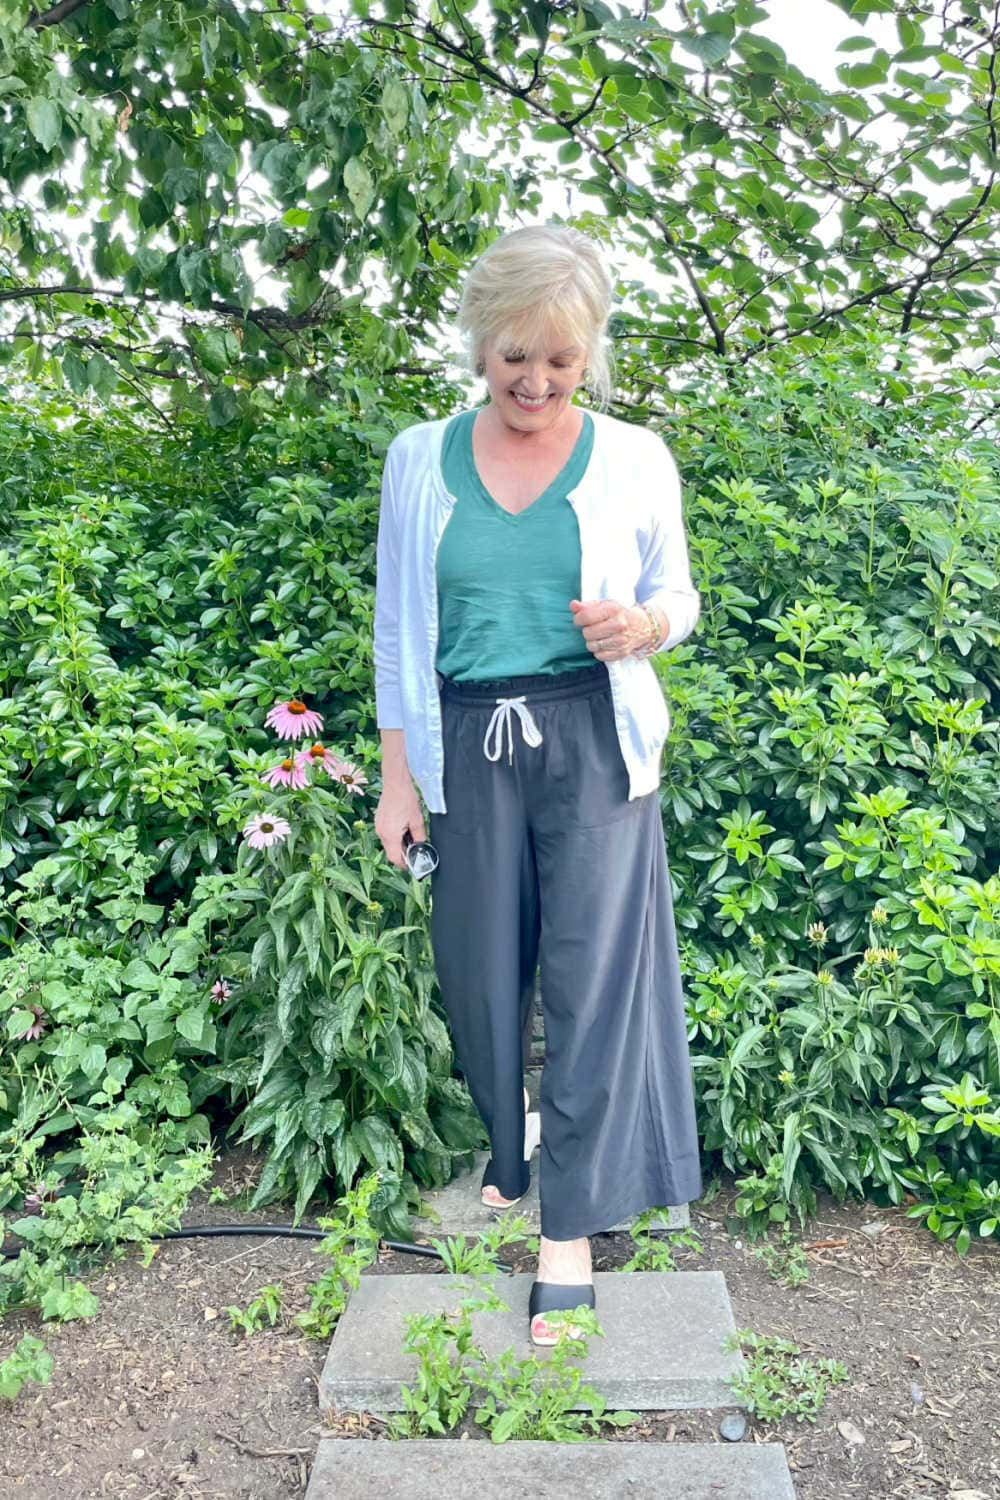 over 50 blogger jennifer connolly walking in garden wearing wide legged Zella pants with white cardigan